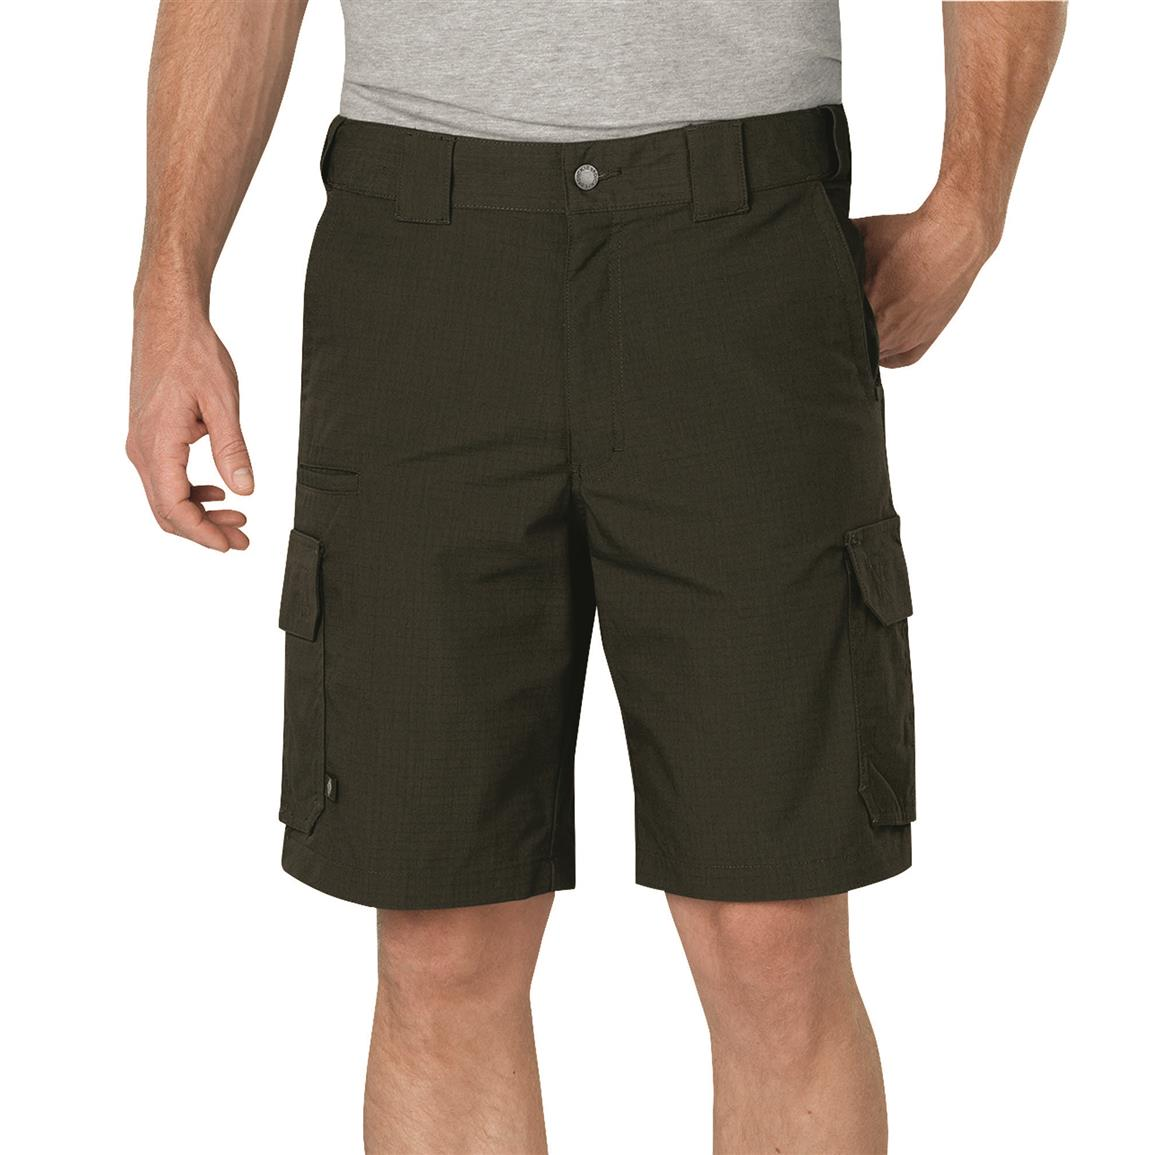 "Dickies Men's 10"" Stretch Ripstop Tactical Shorts, Tactical Green; 10"" inseam"